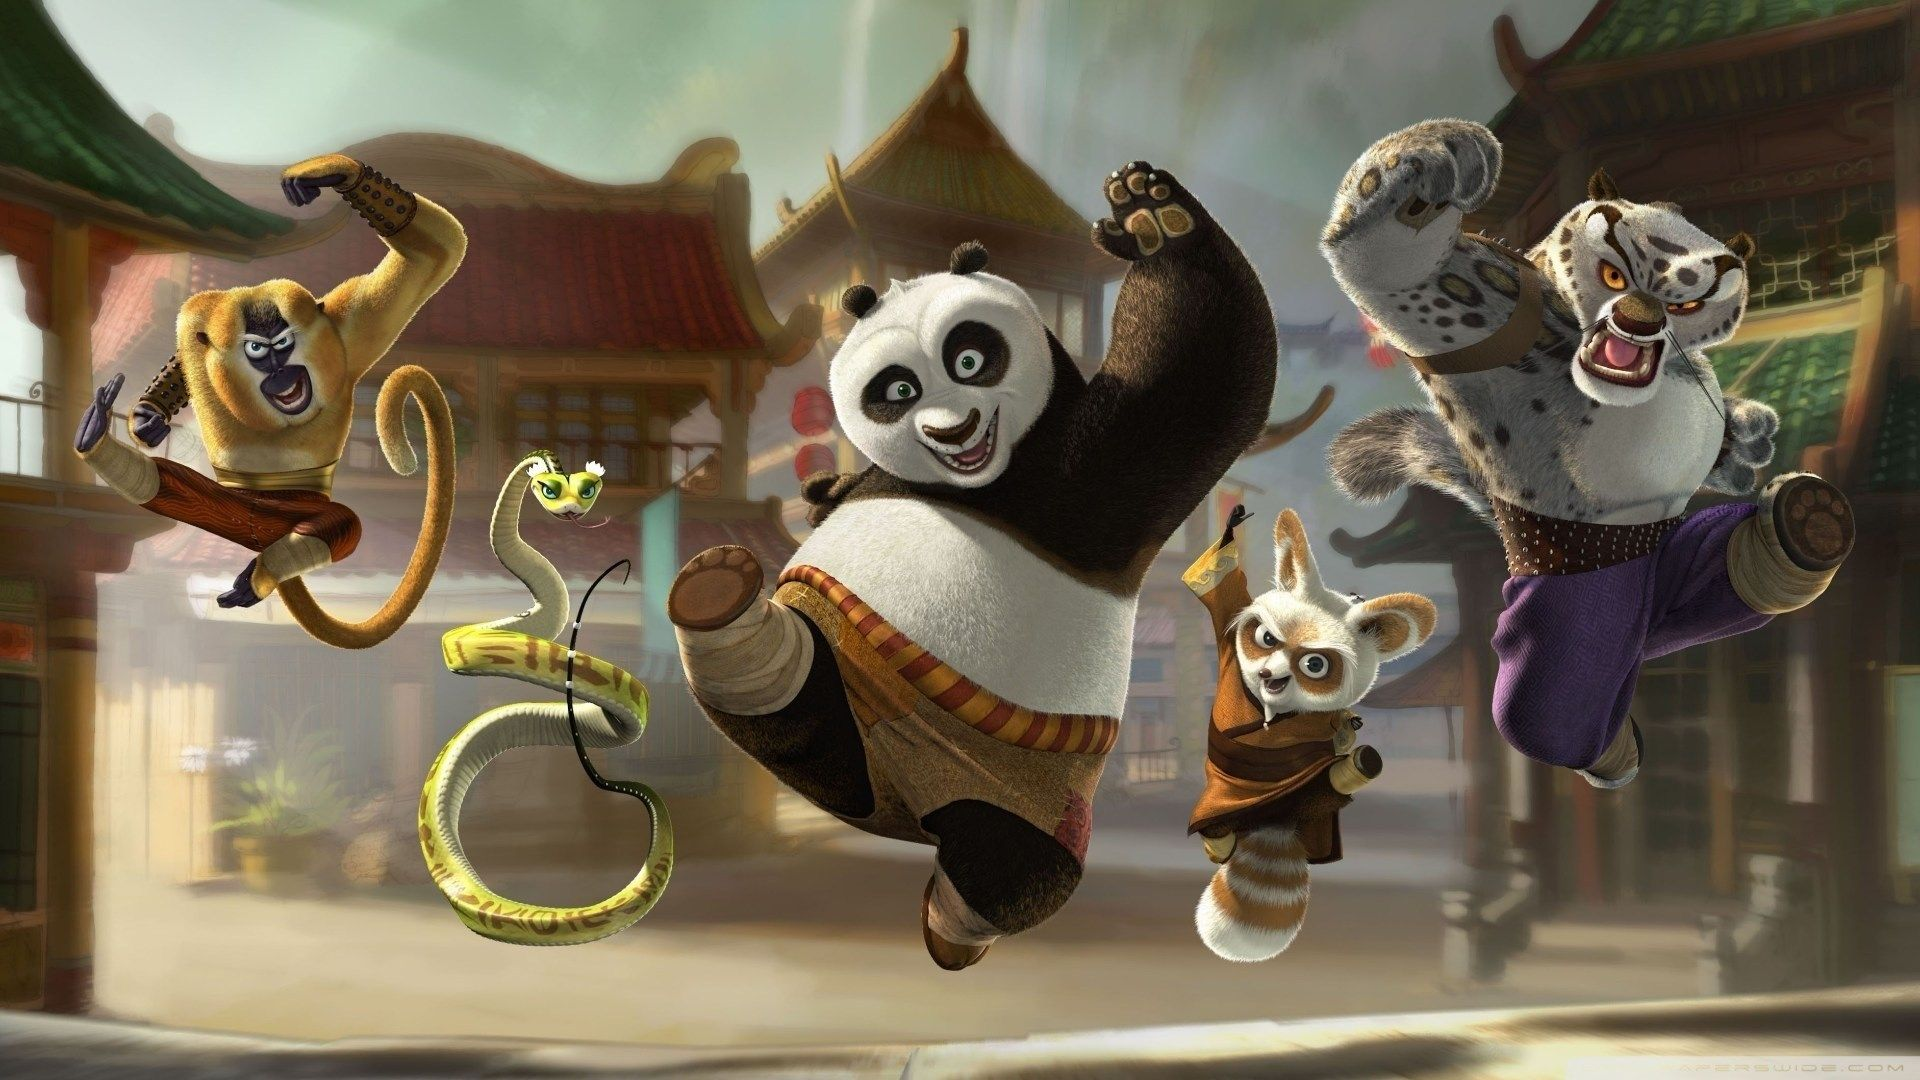 kung fu panda pic 1080p high quality, 331 kb - falkner black